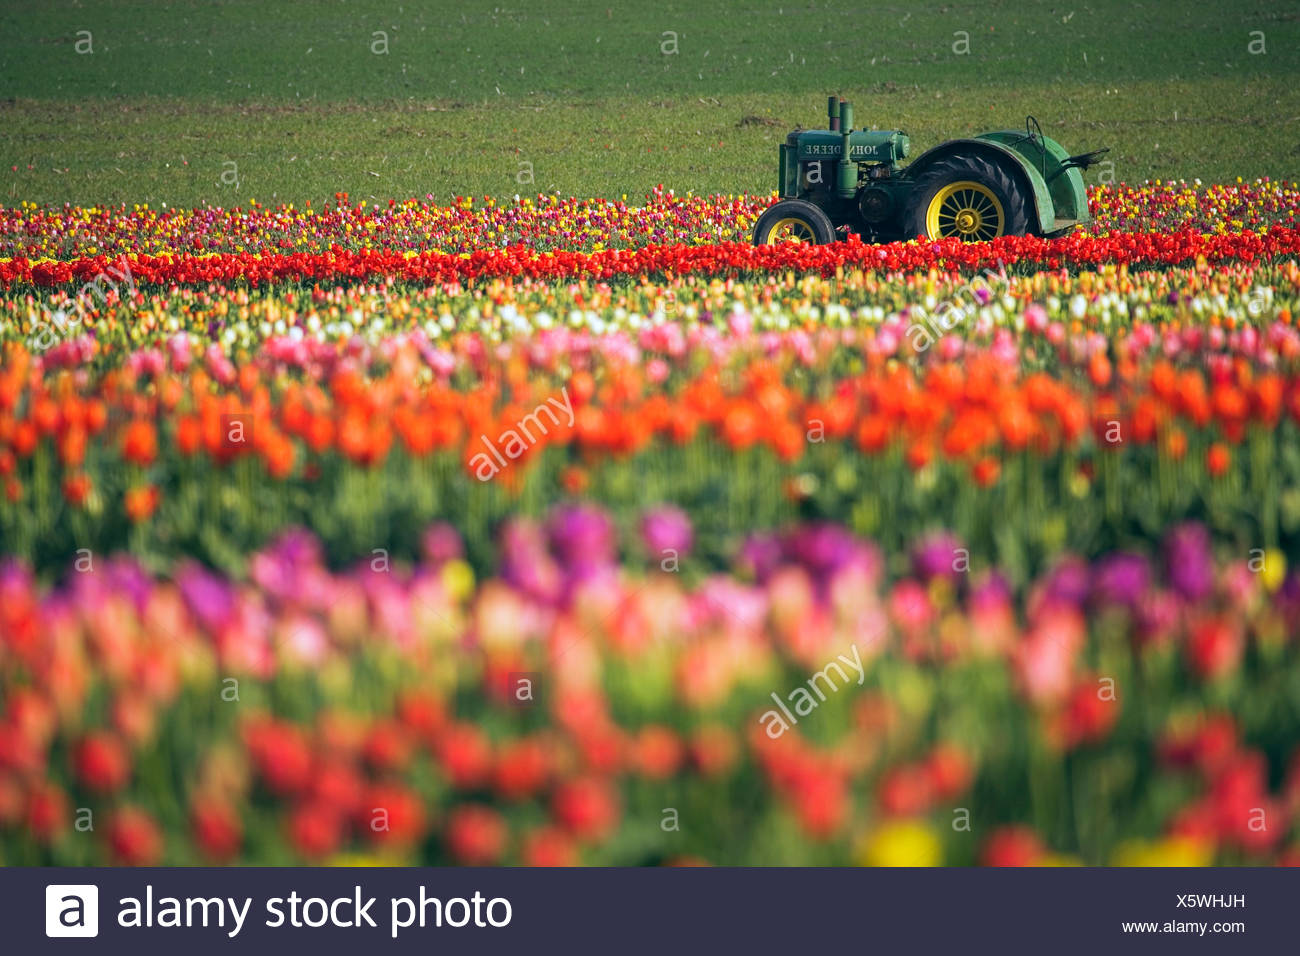 Tractor In Tulip Field - Stock Image